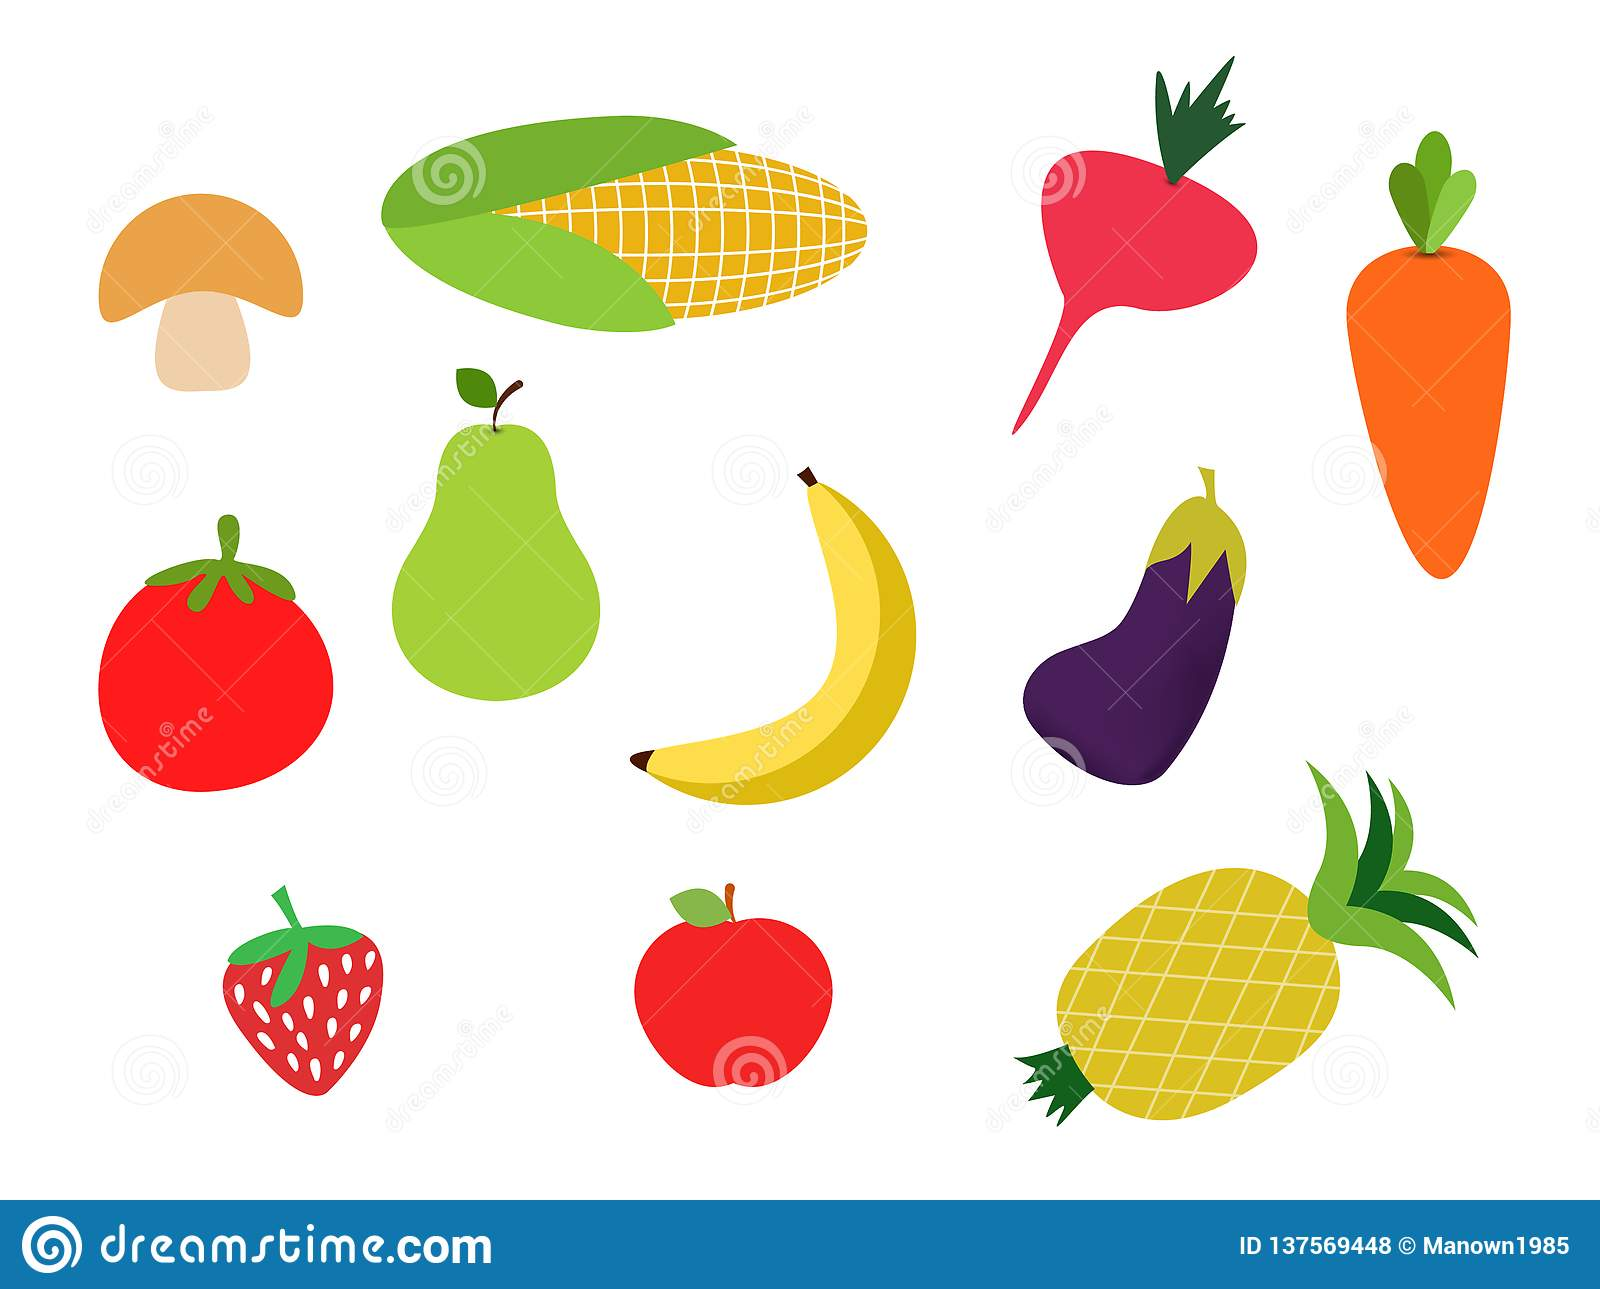 Colorful Fruits And Vegetables Clipart Set Banana Carot Stock Vector